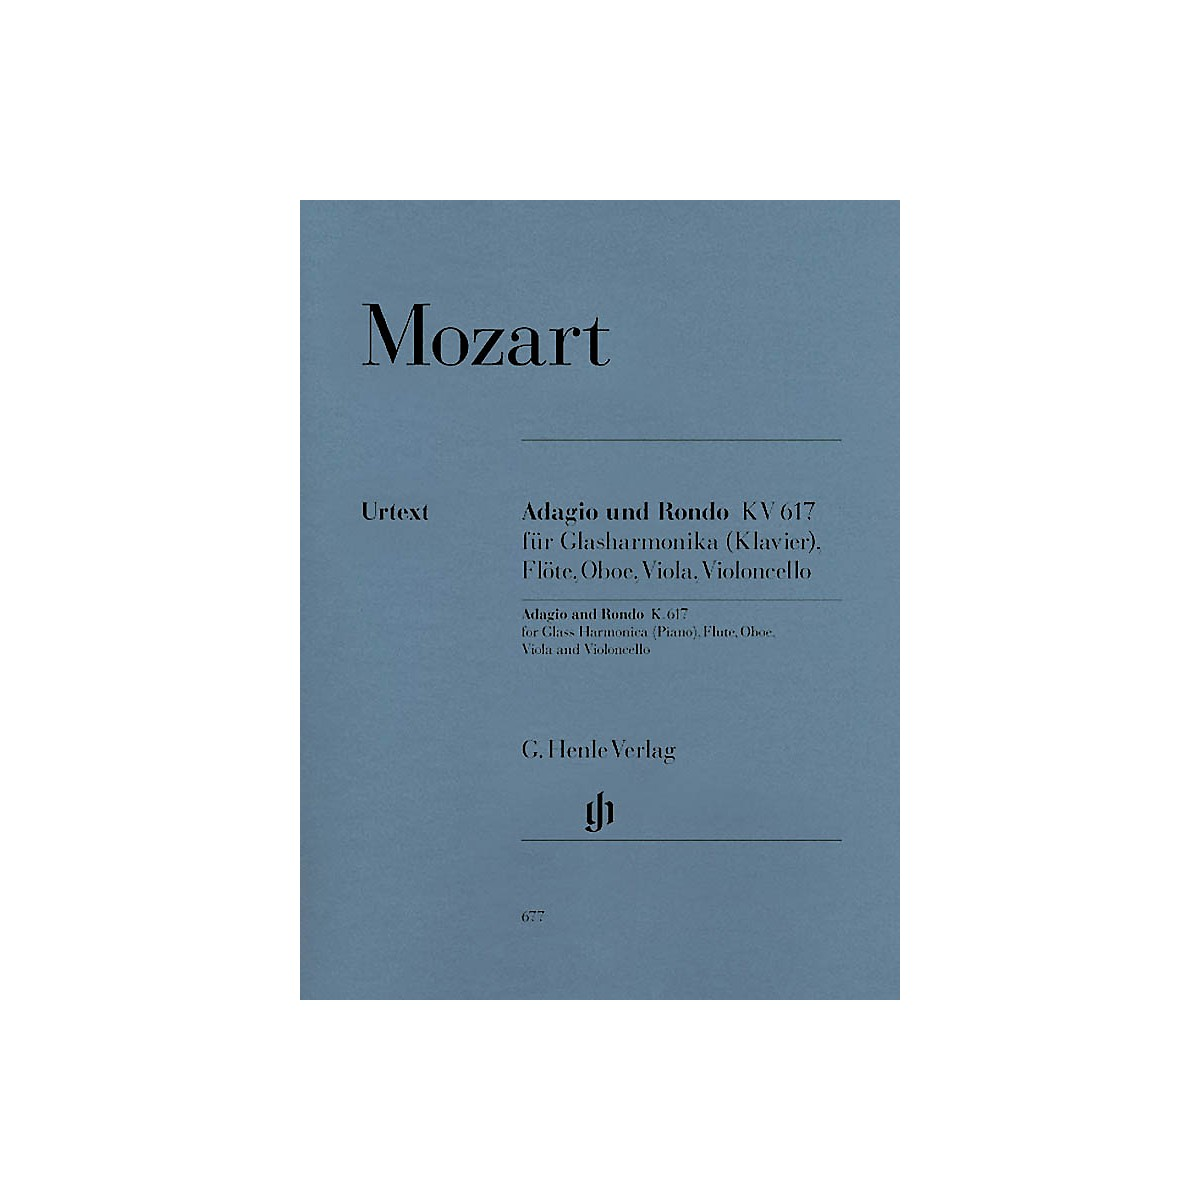 G. Henle Verlag Adagio and Rondo K617 Henle Music Folios Series Softcover  by Wolfgang Amadeus Mozart